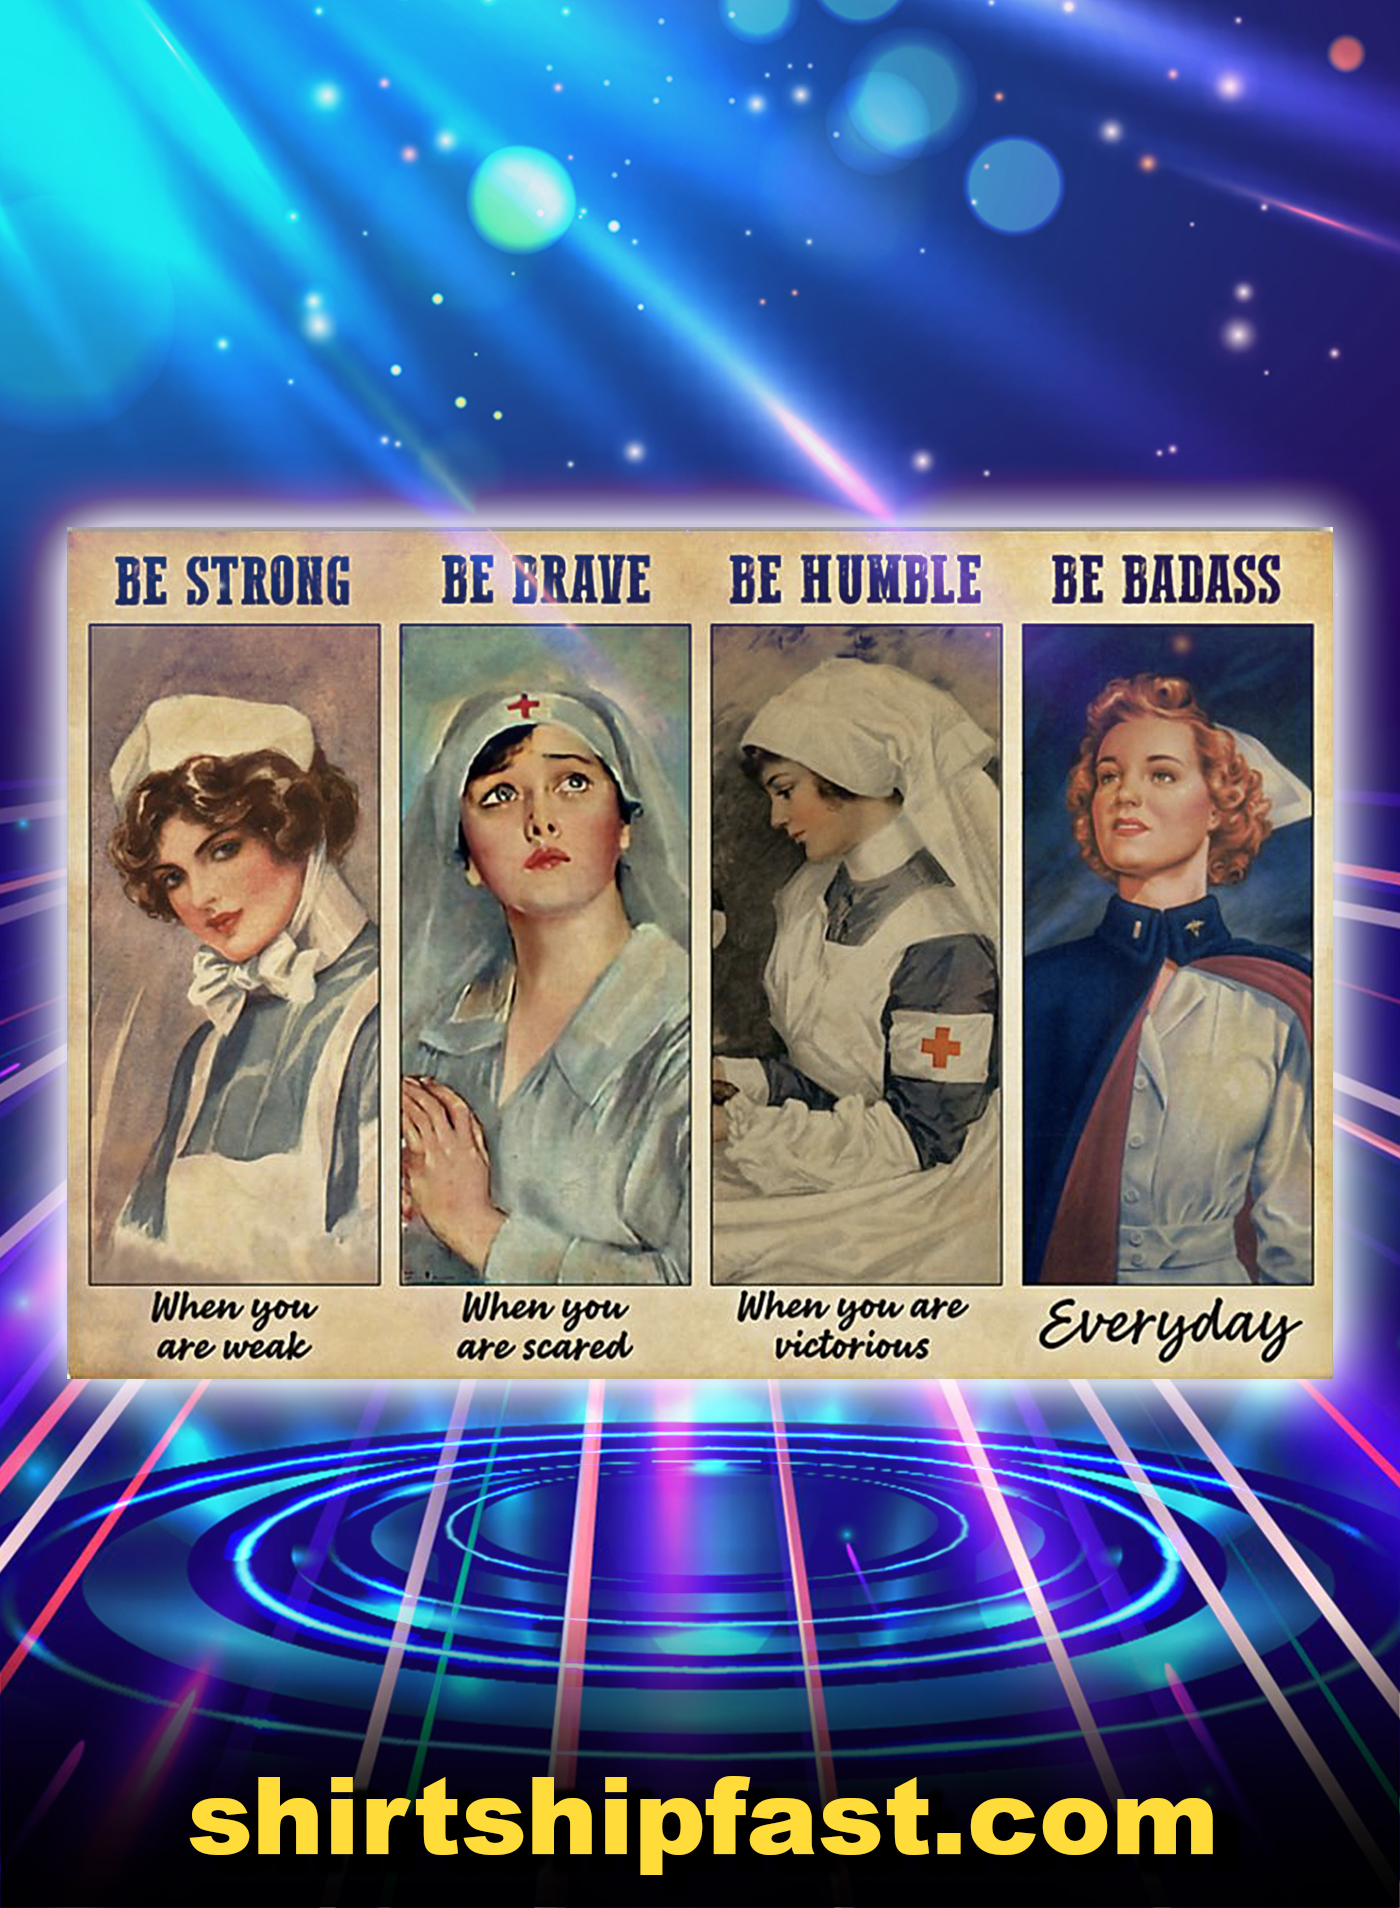 Female nurse be strong be brave be humble be badass poster - A1